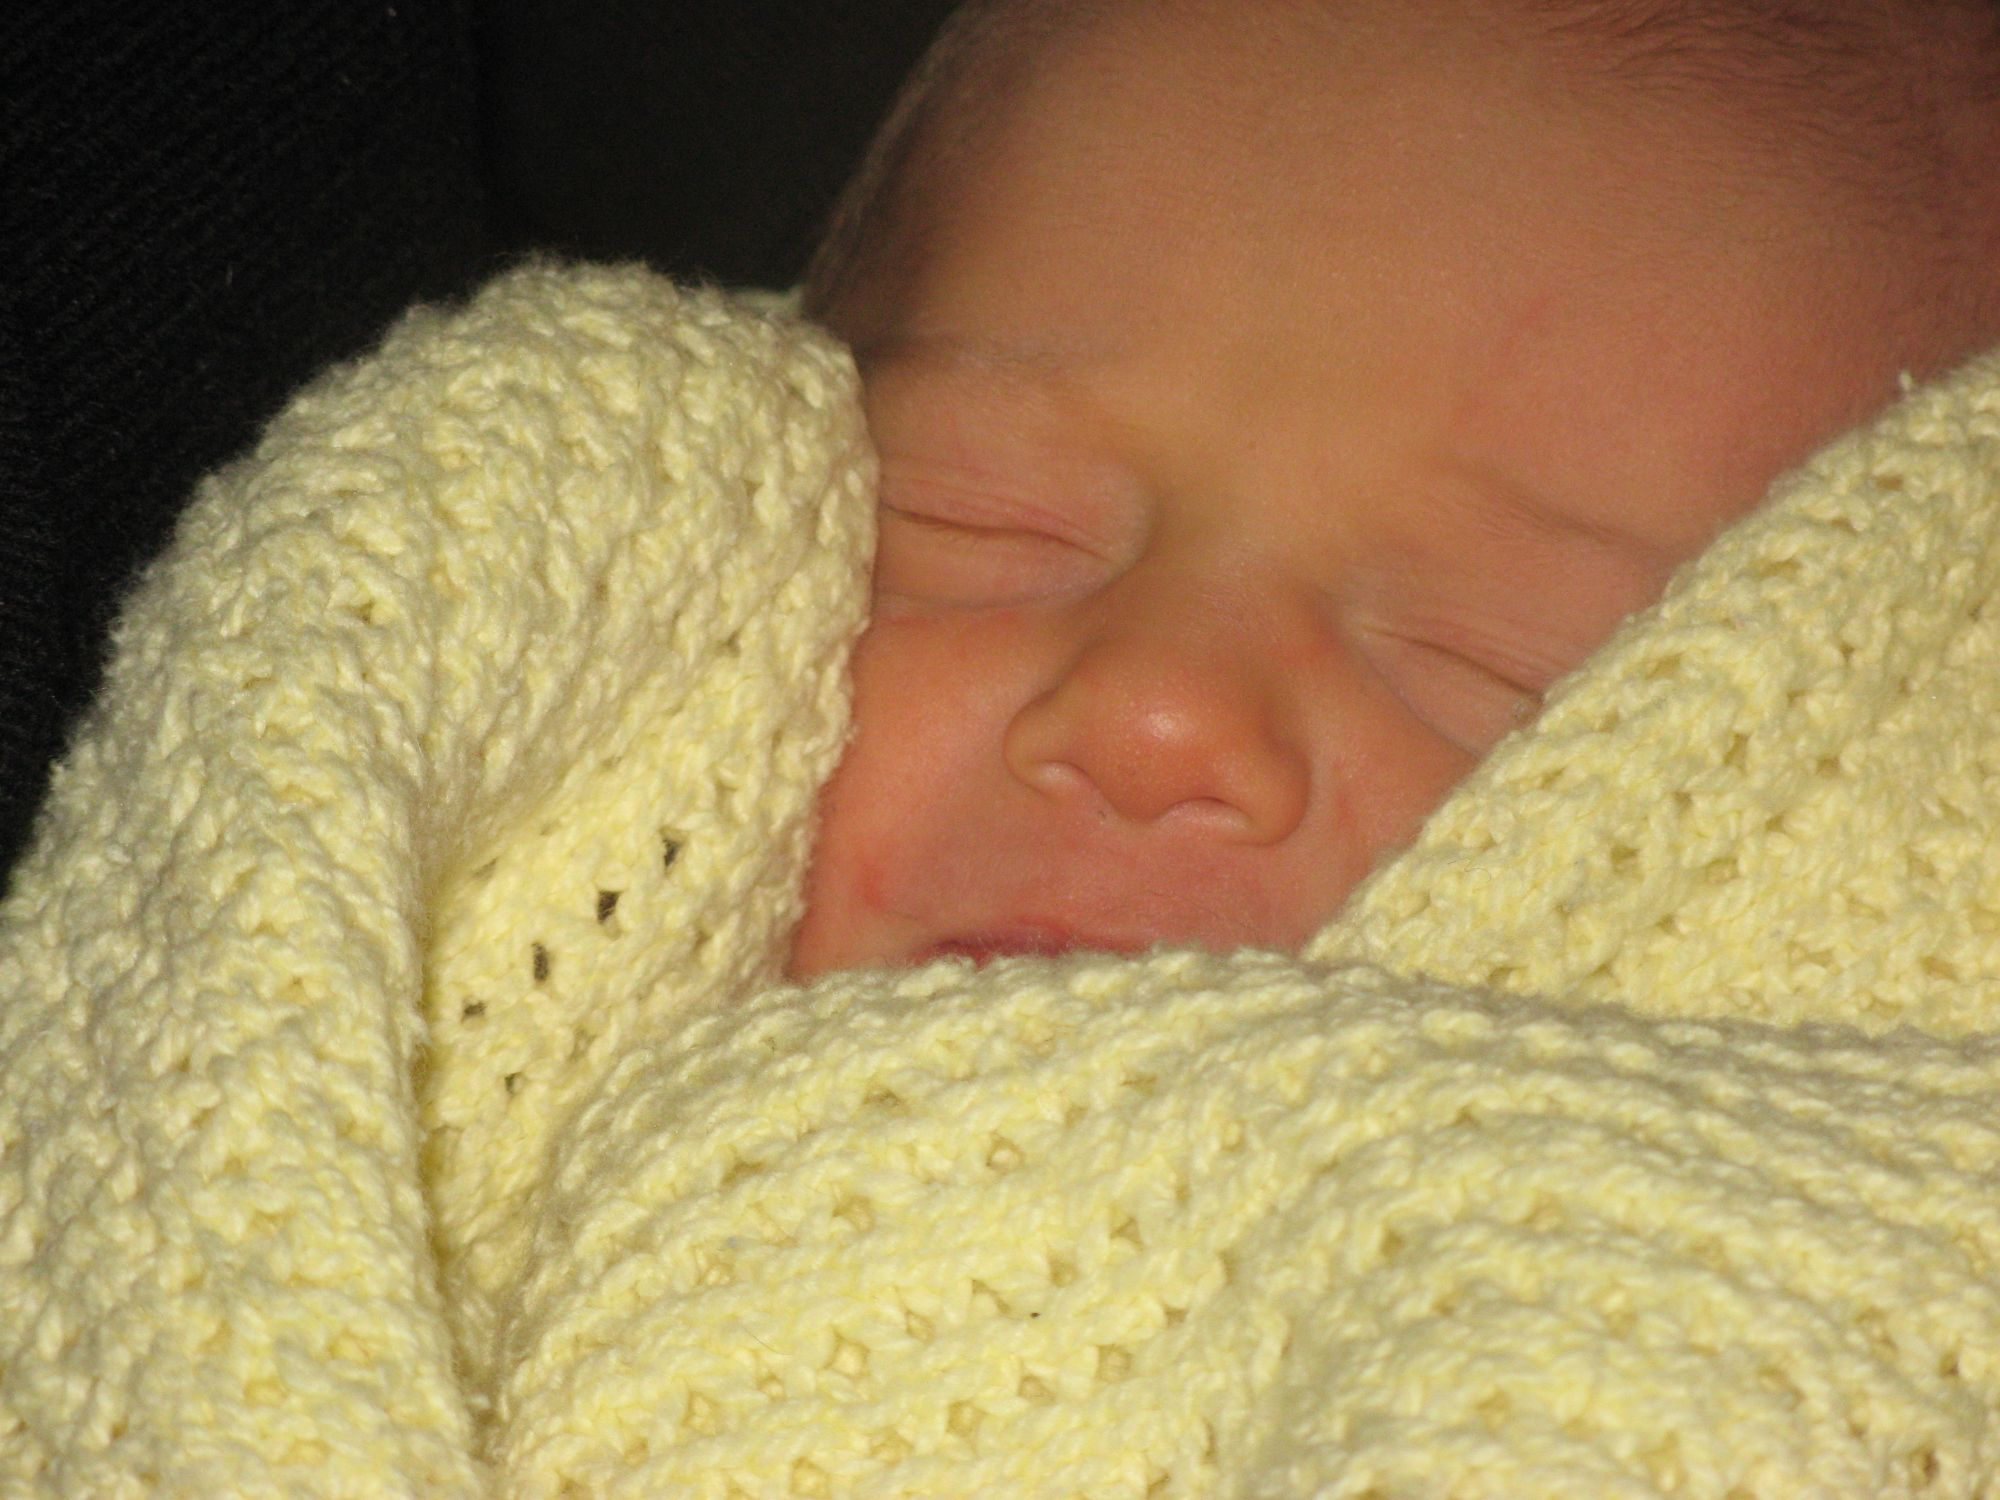 A close up of a sleeping newborn baby's face. They are wrapped in a yellow blanket.